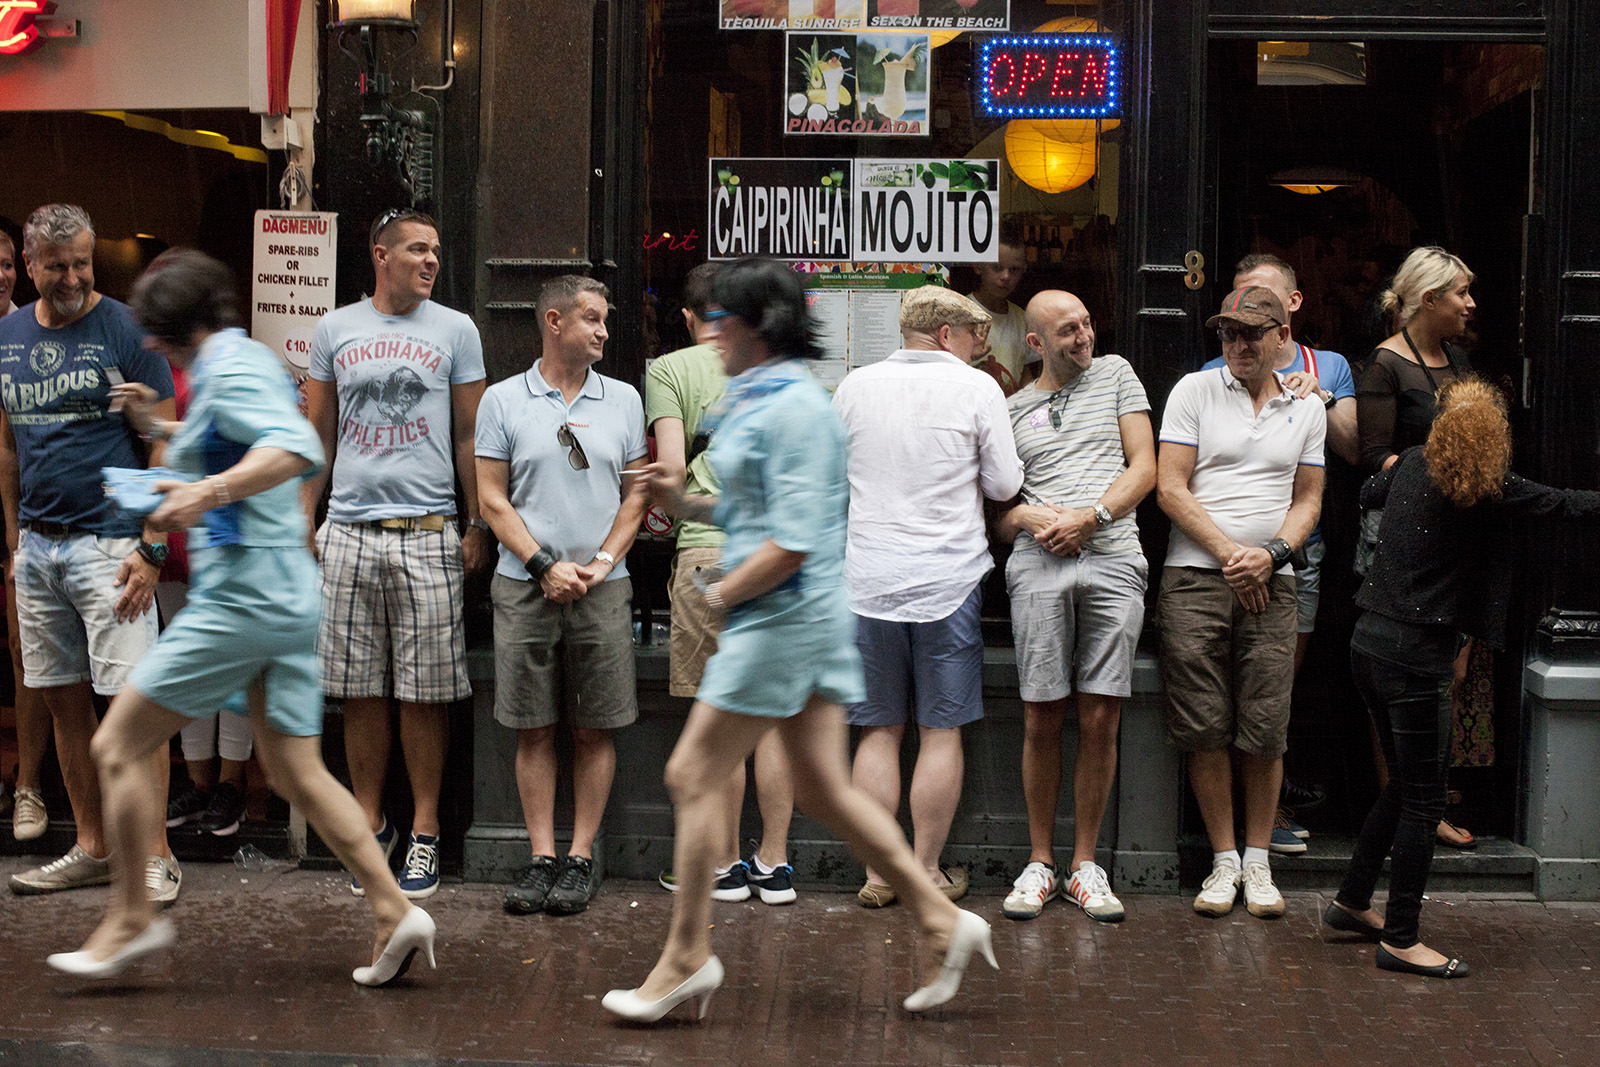 It's raining men, Gay pride, op hakken lopen